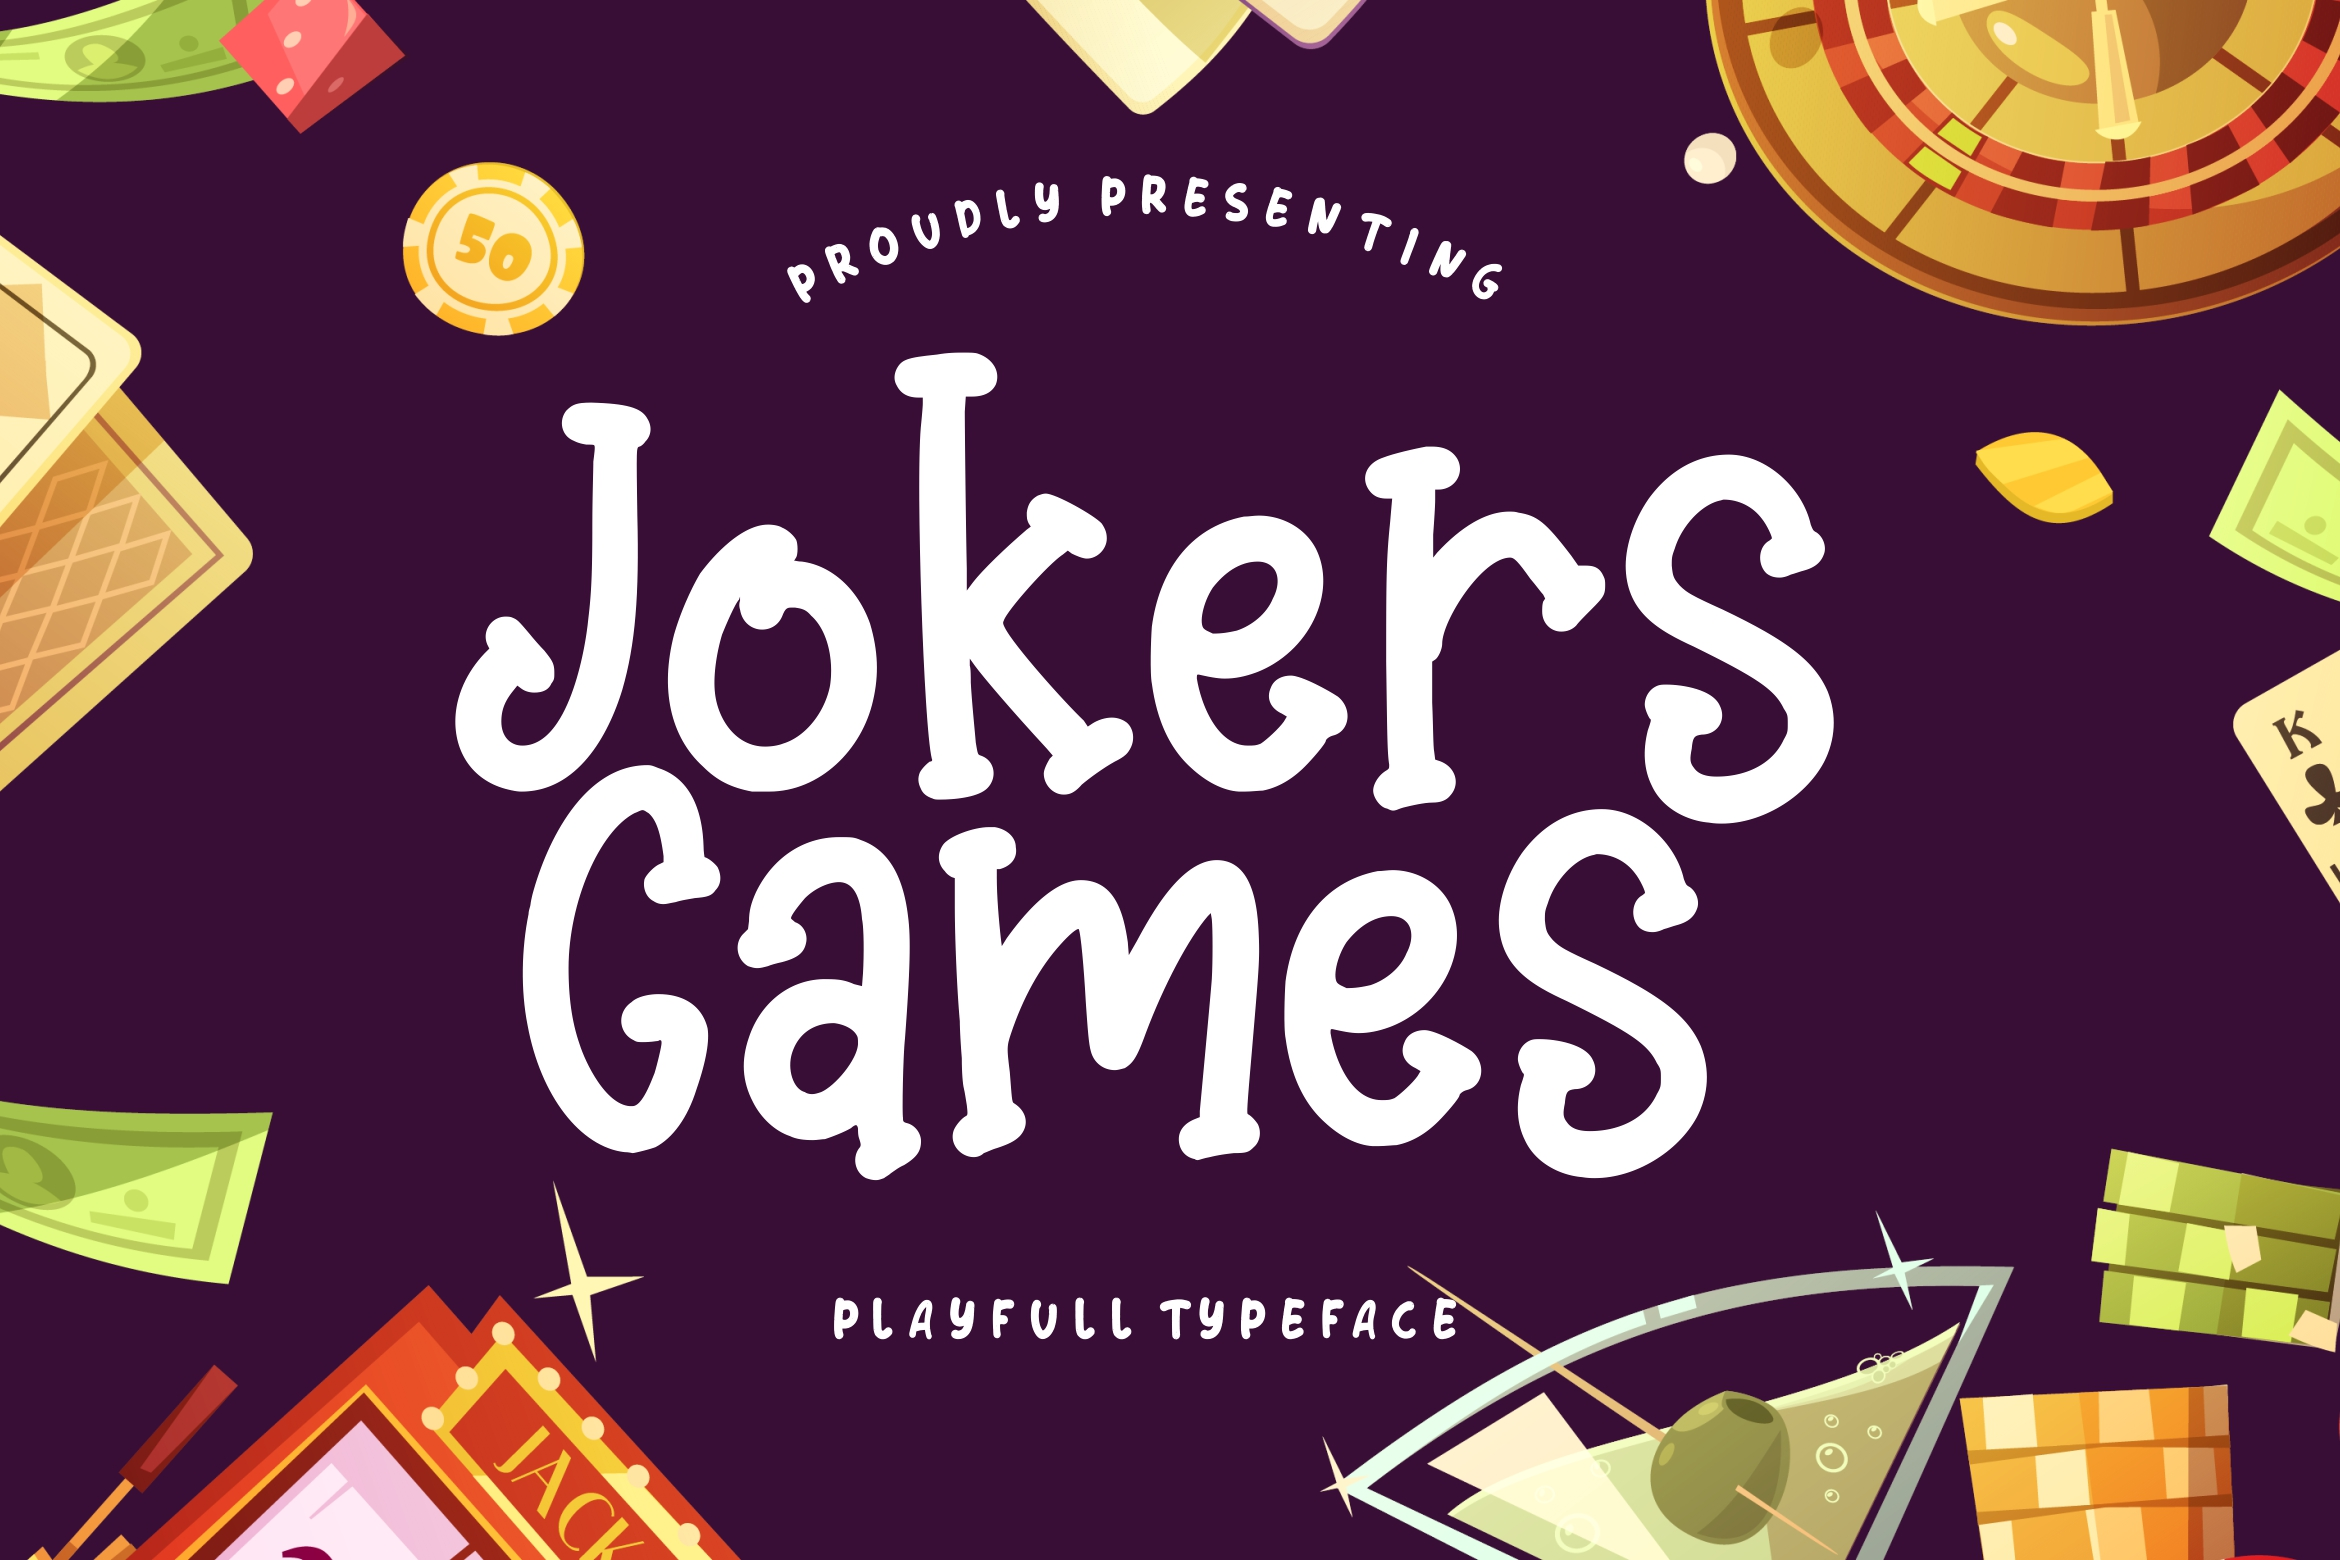 Jokers Games Child Play Typeface example image 1